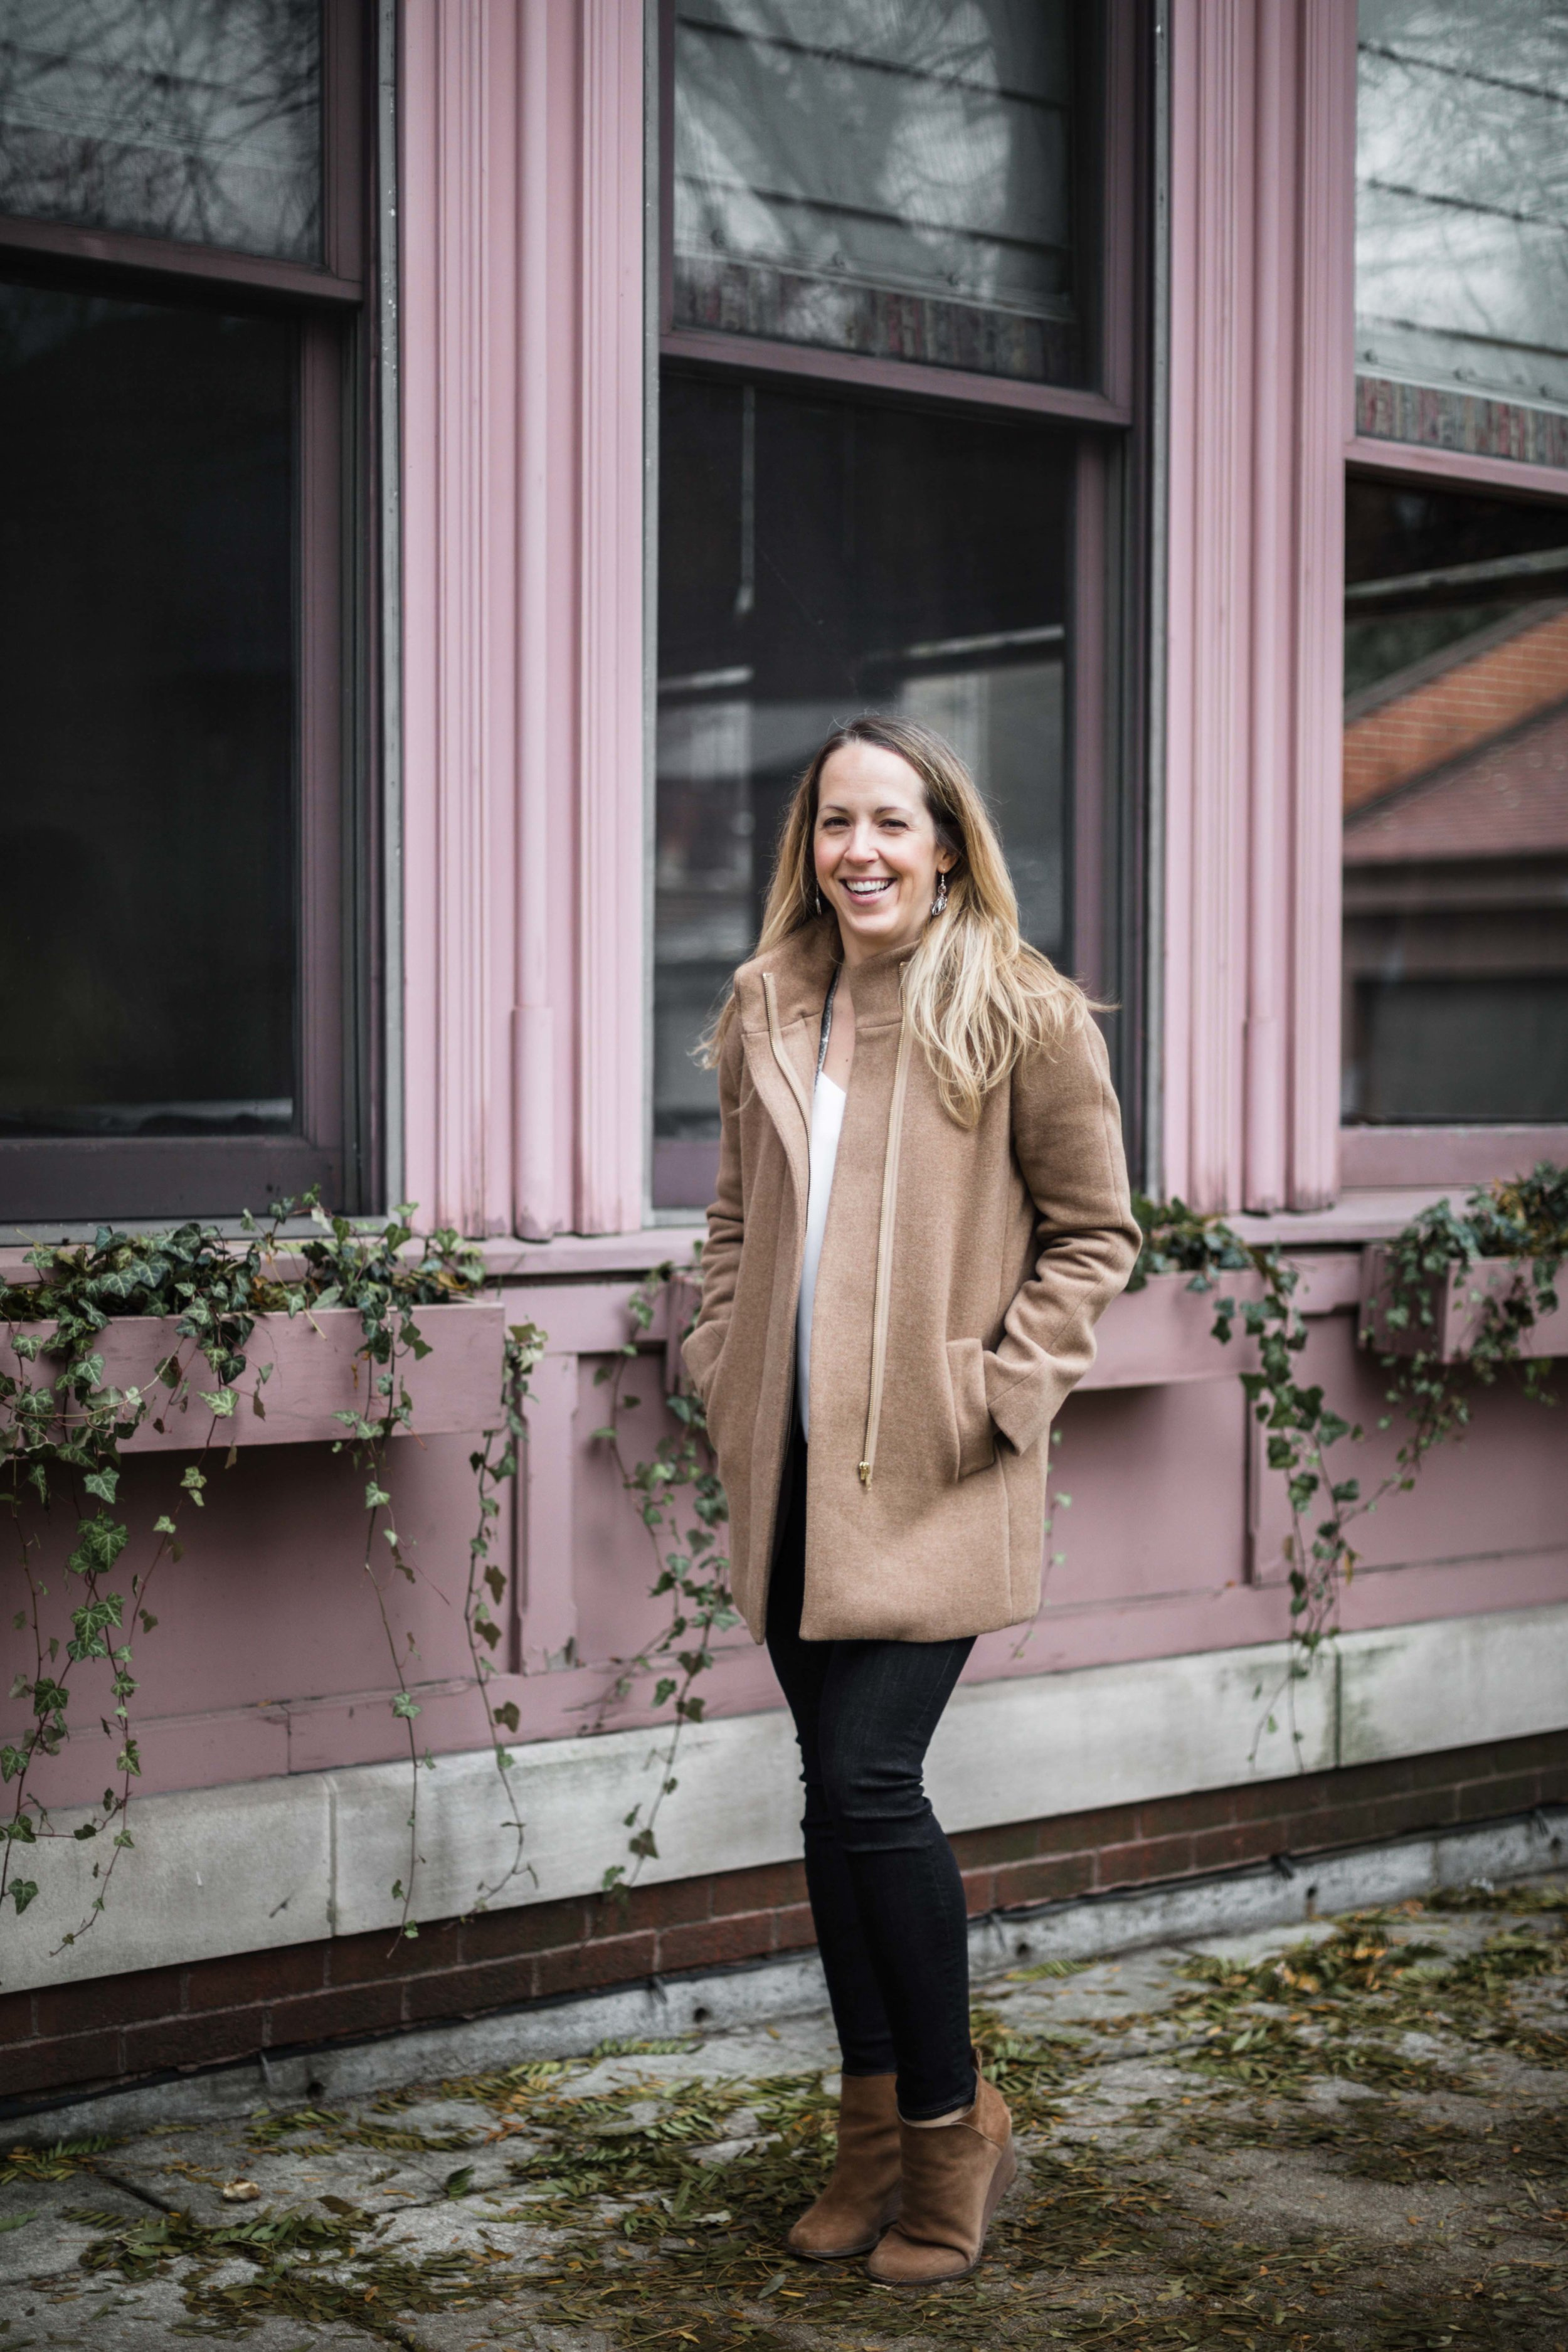 grace + hudson owner Stacy interviewed for entrepenurial women feature series  Inspired Chicago